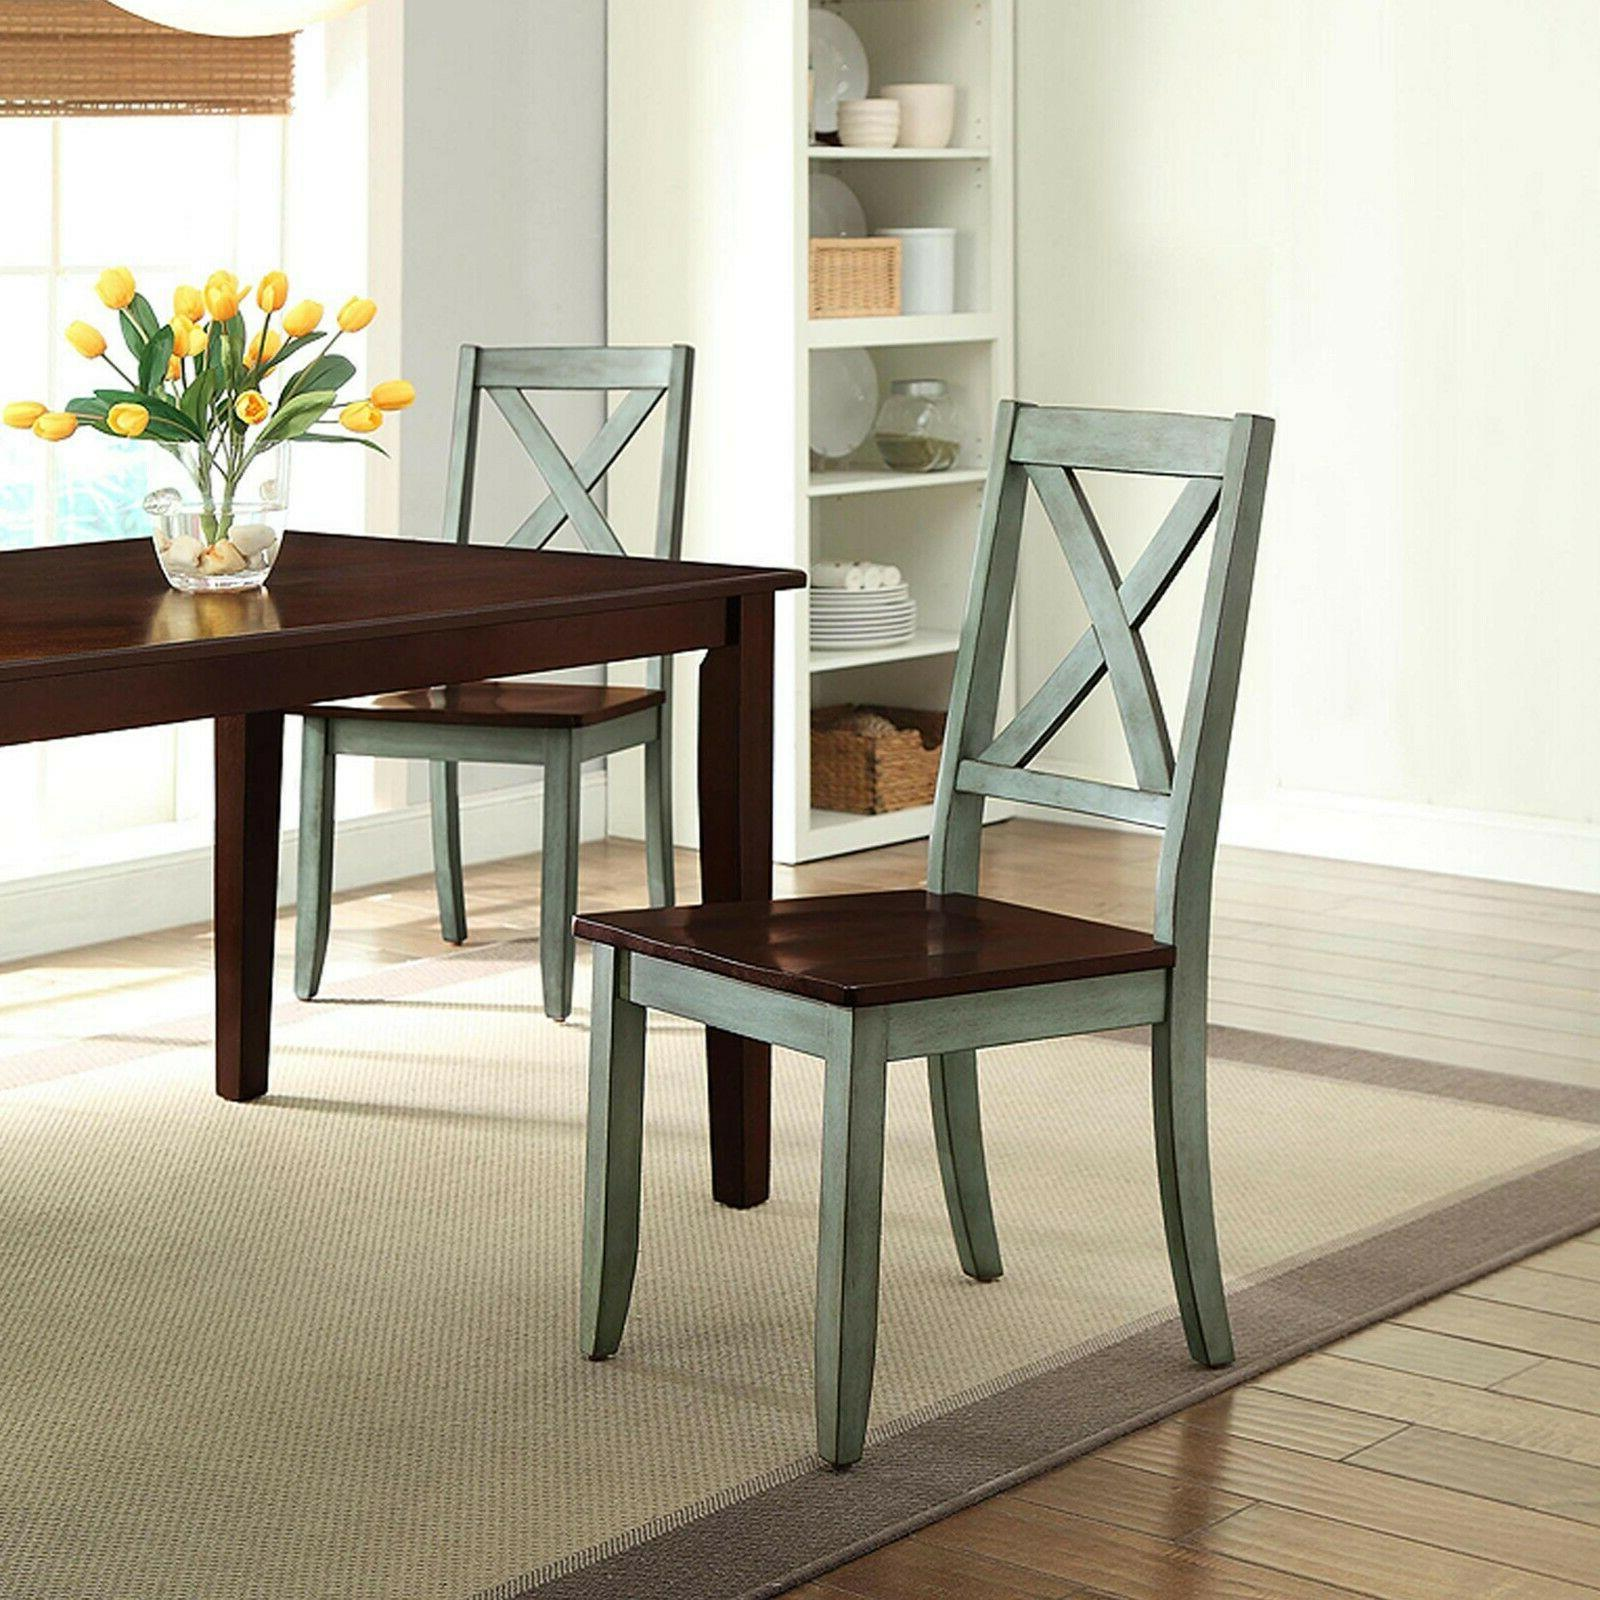 Dining Room Kitchen And Chairs Sets